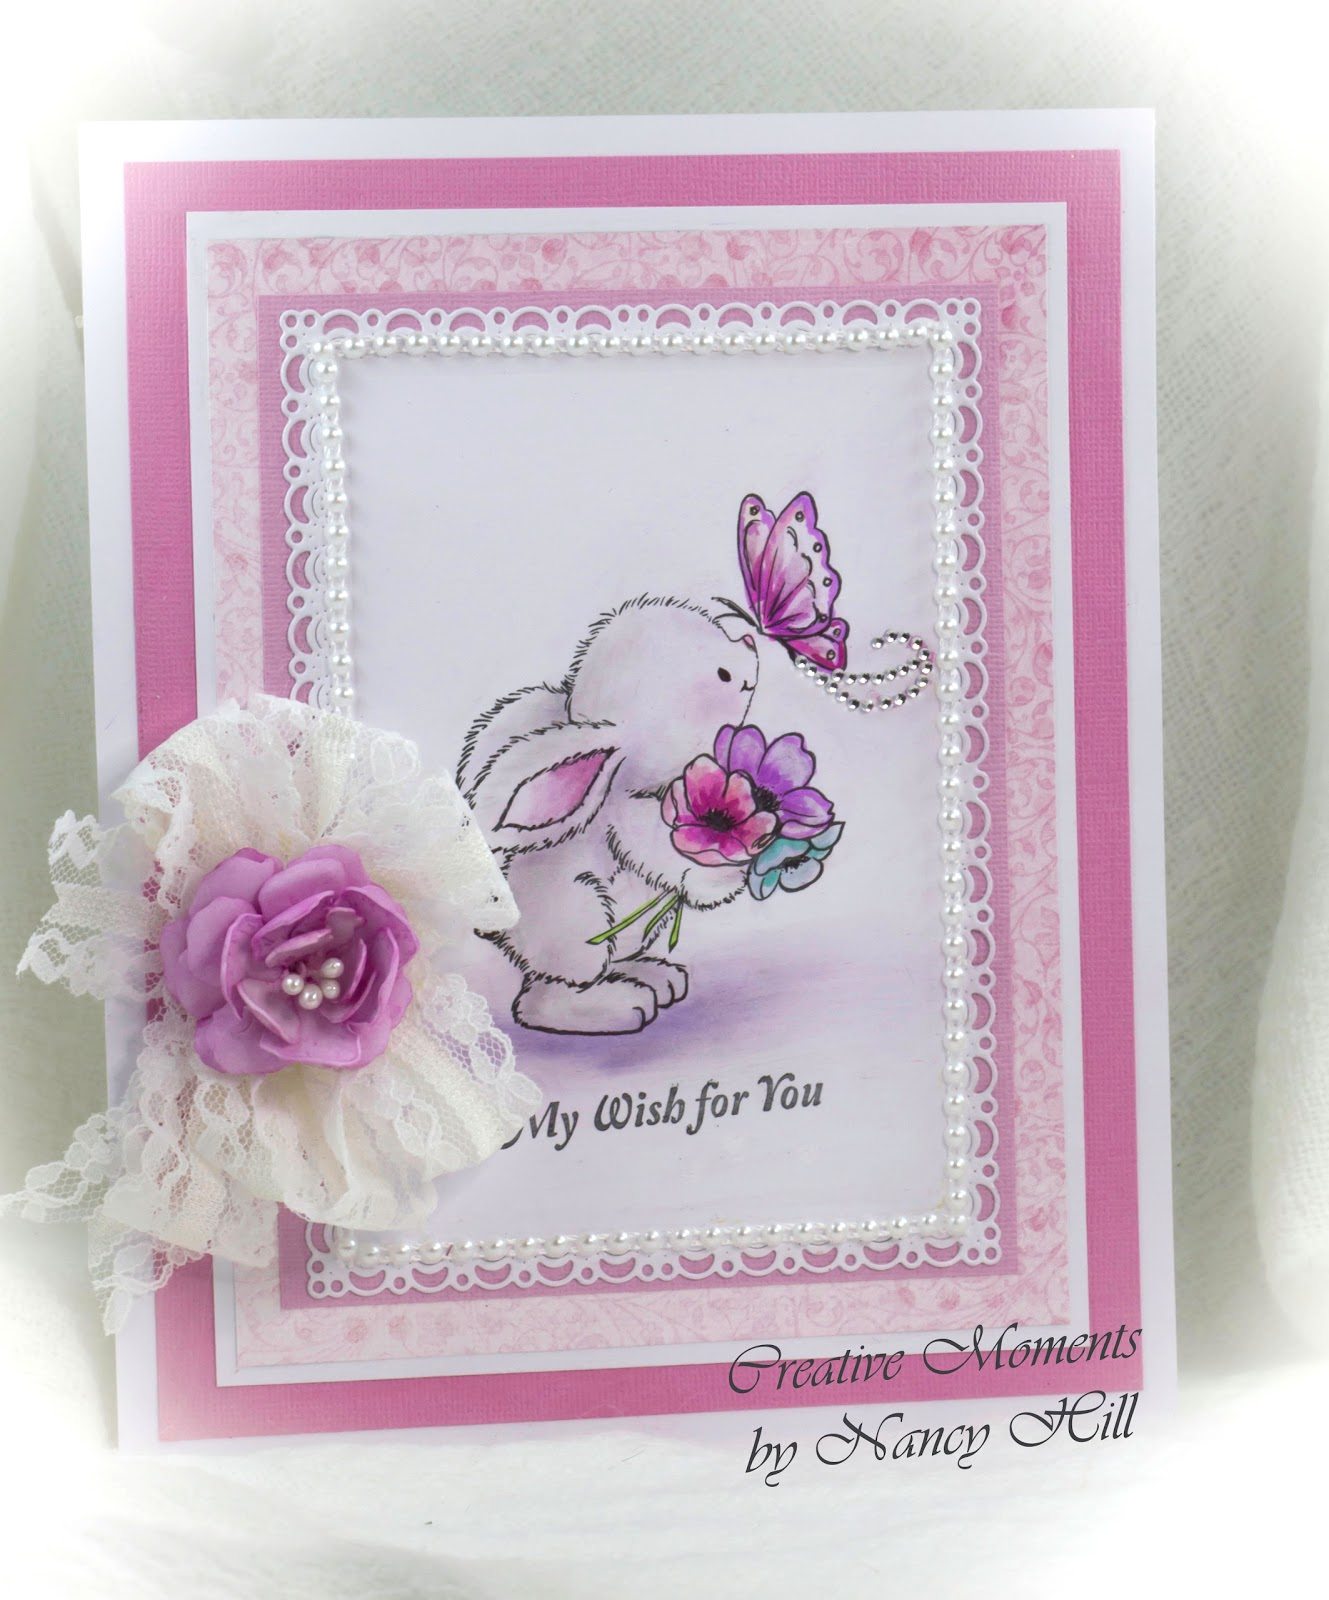 Welcome Back And Nancy Hill Design Team For The Rubber Buggy Excited To Share A Birthday Card Made With Adorable Wild Rose Studio Bunny Butterfly